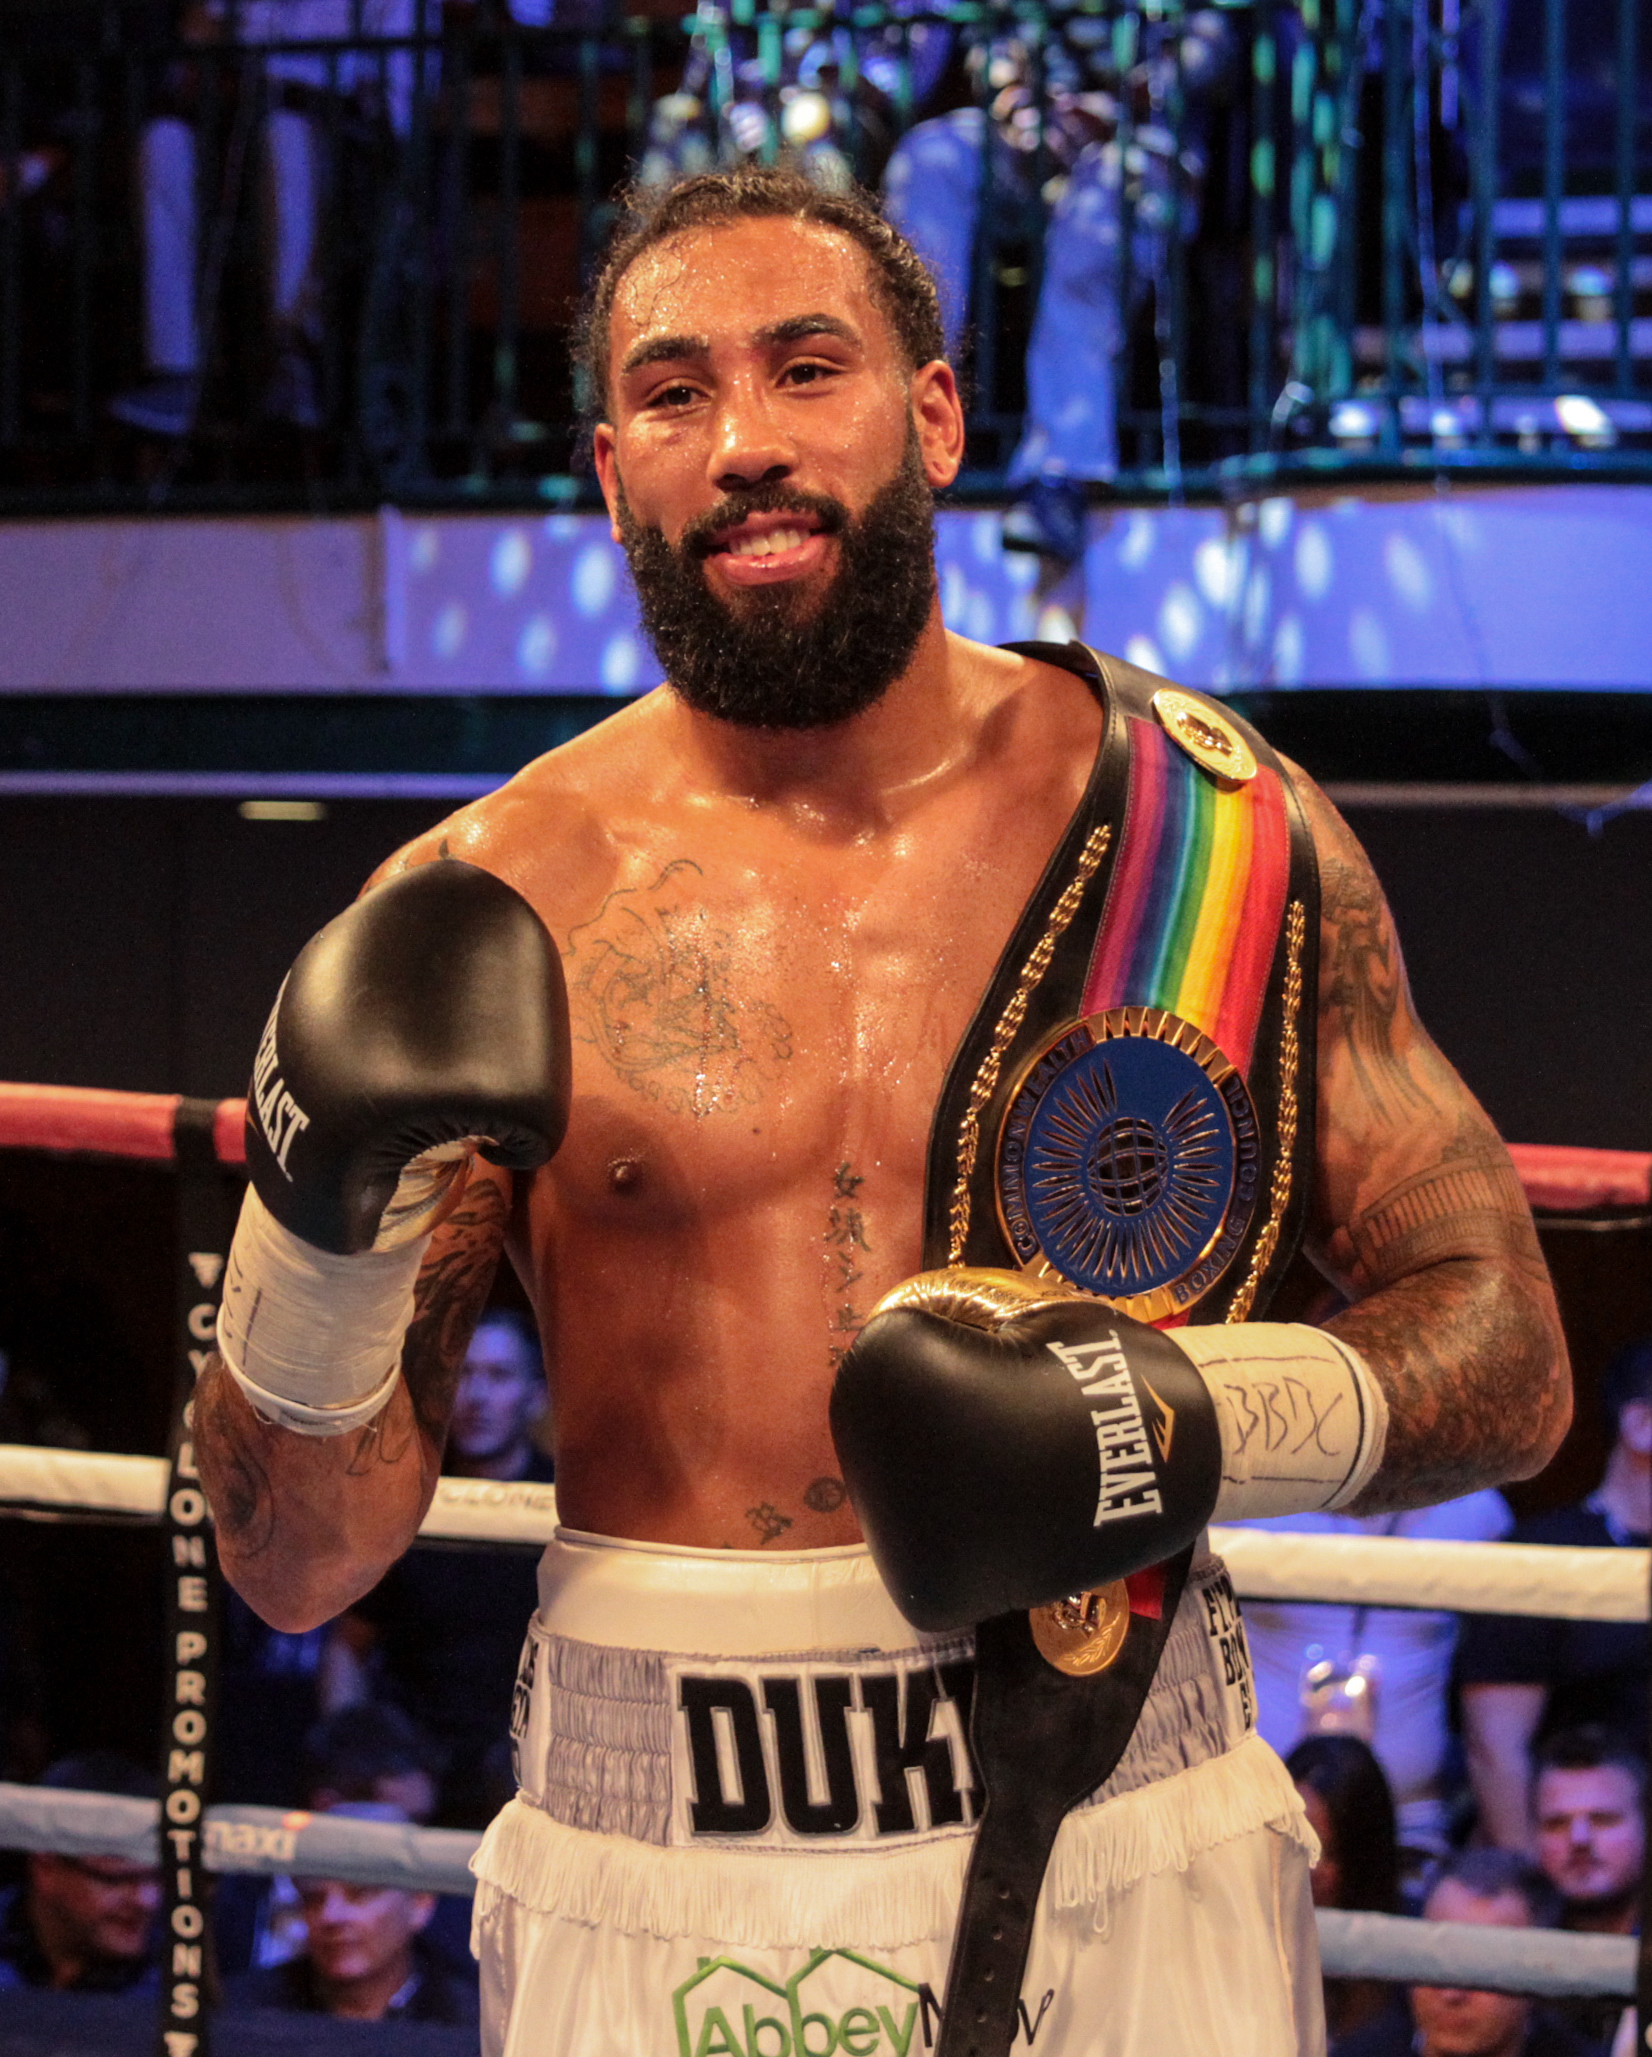 Luke Watkins celebrates his Commonwealth cruiserweight title win earlier this month (Picture: NAOMI YOUD)